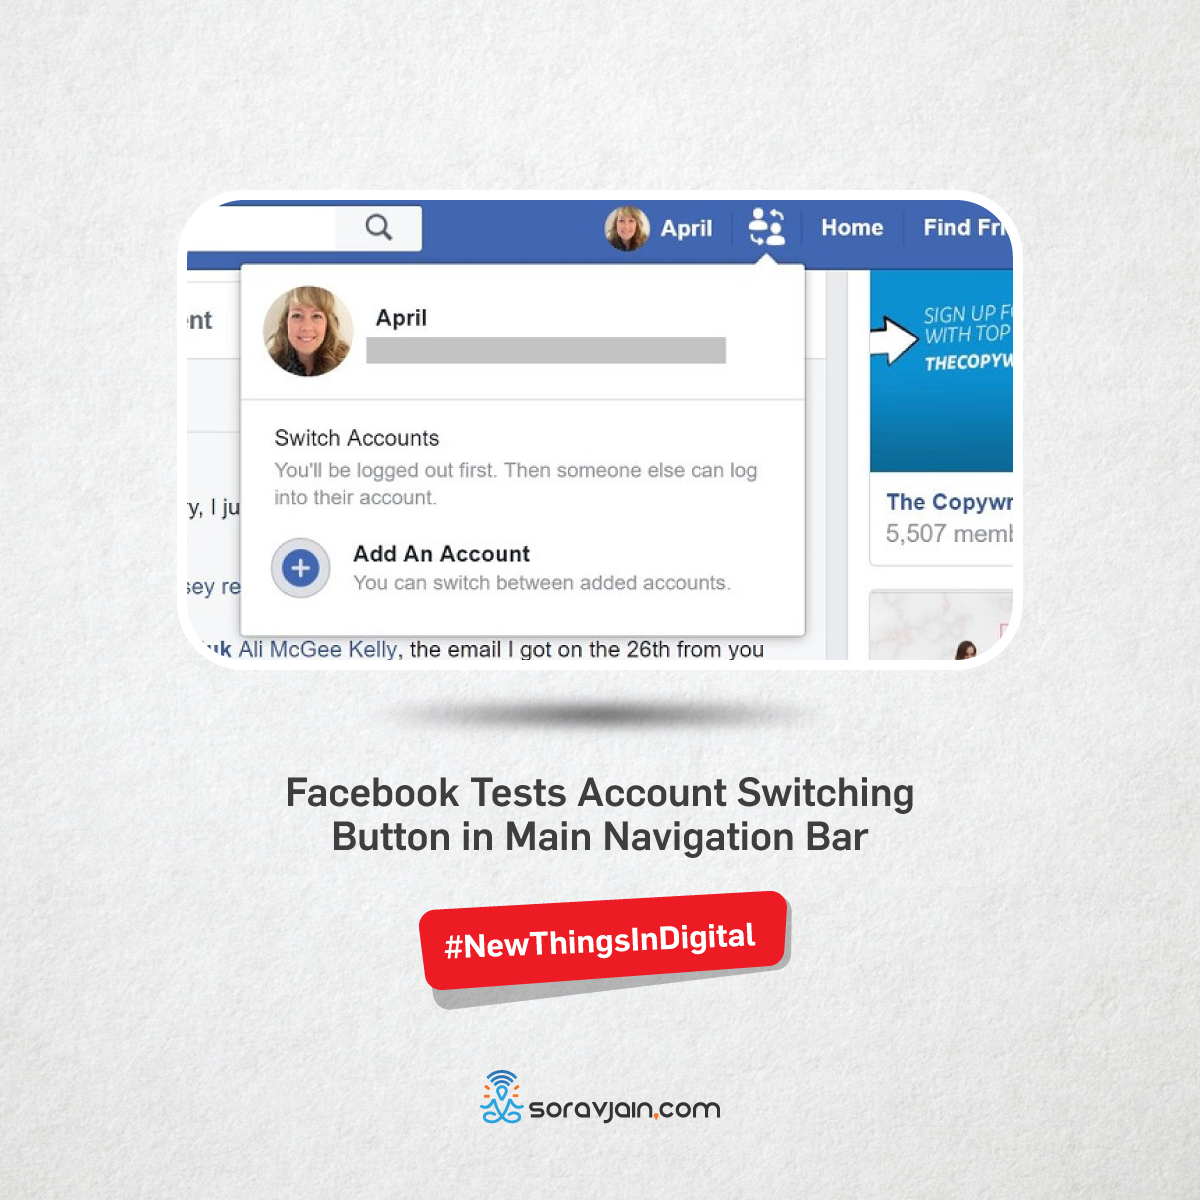 Facebook Tests Account Switching Button in Main Navigation Bar